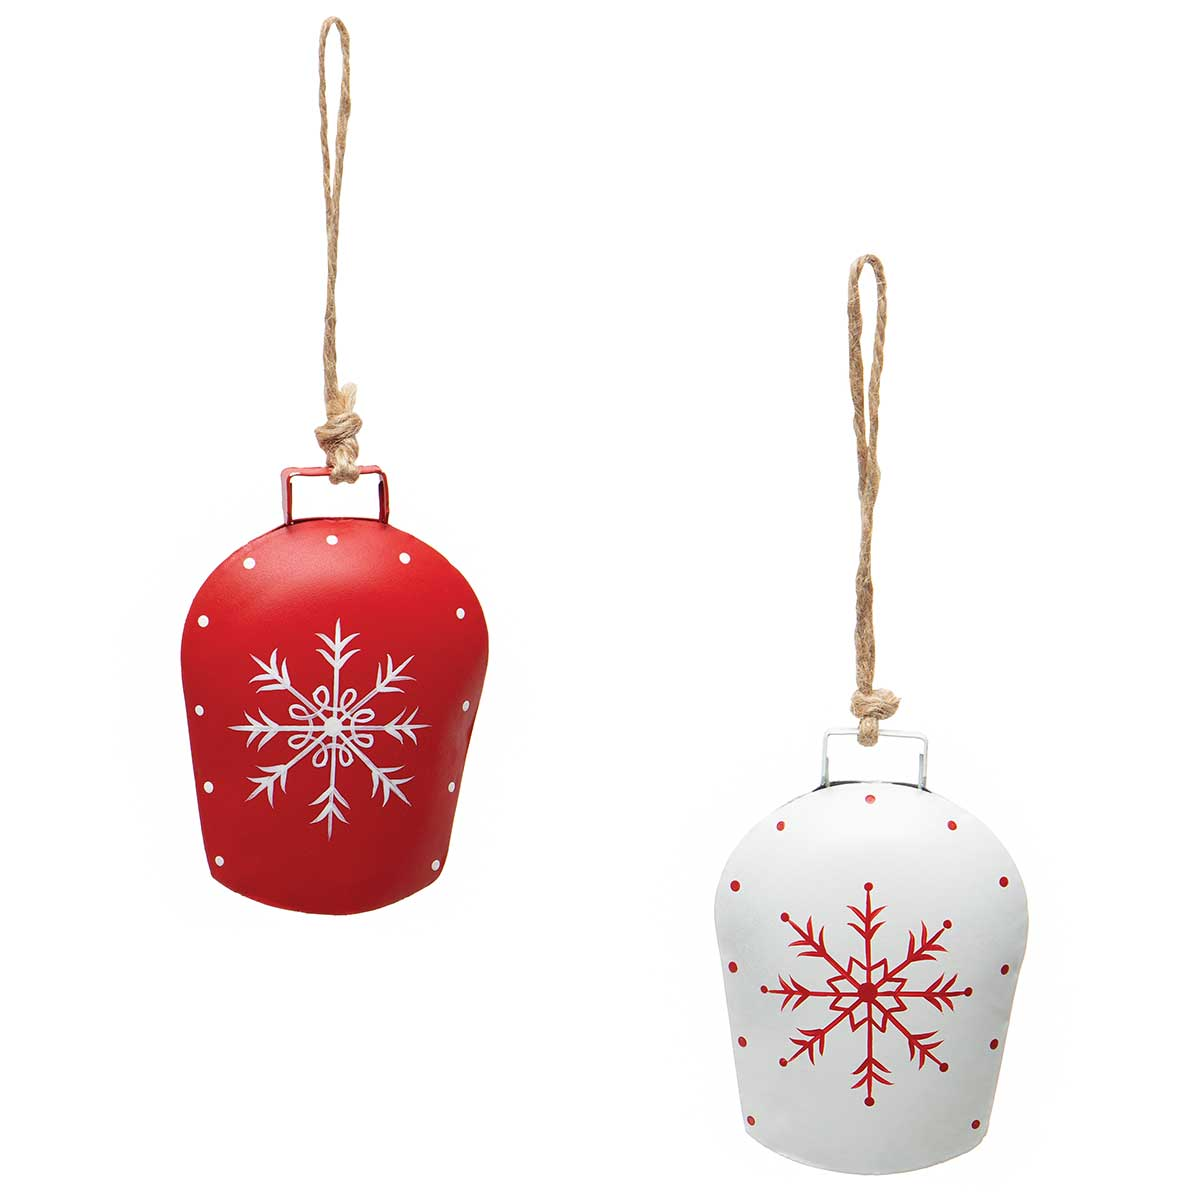 ALPINE BELL METAL ORNAMENT WITH SNOWFLAKE AND TWINE